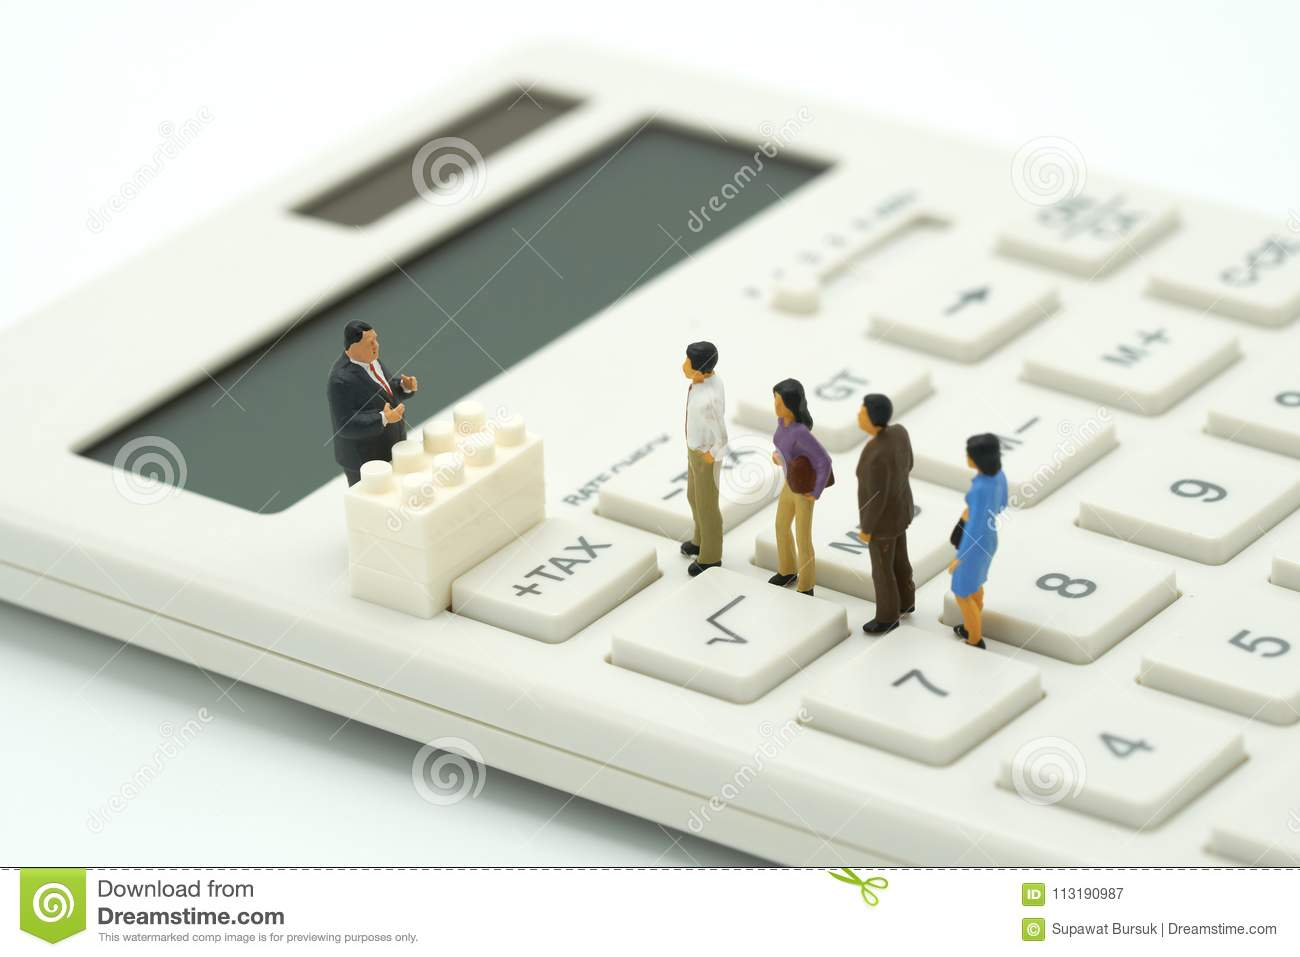 Miniature people Pay queue Annual income TAX for the year on calculator. using as background business concept and finance concep